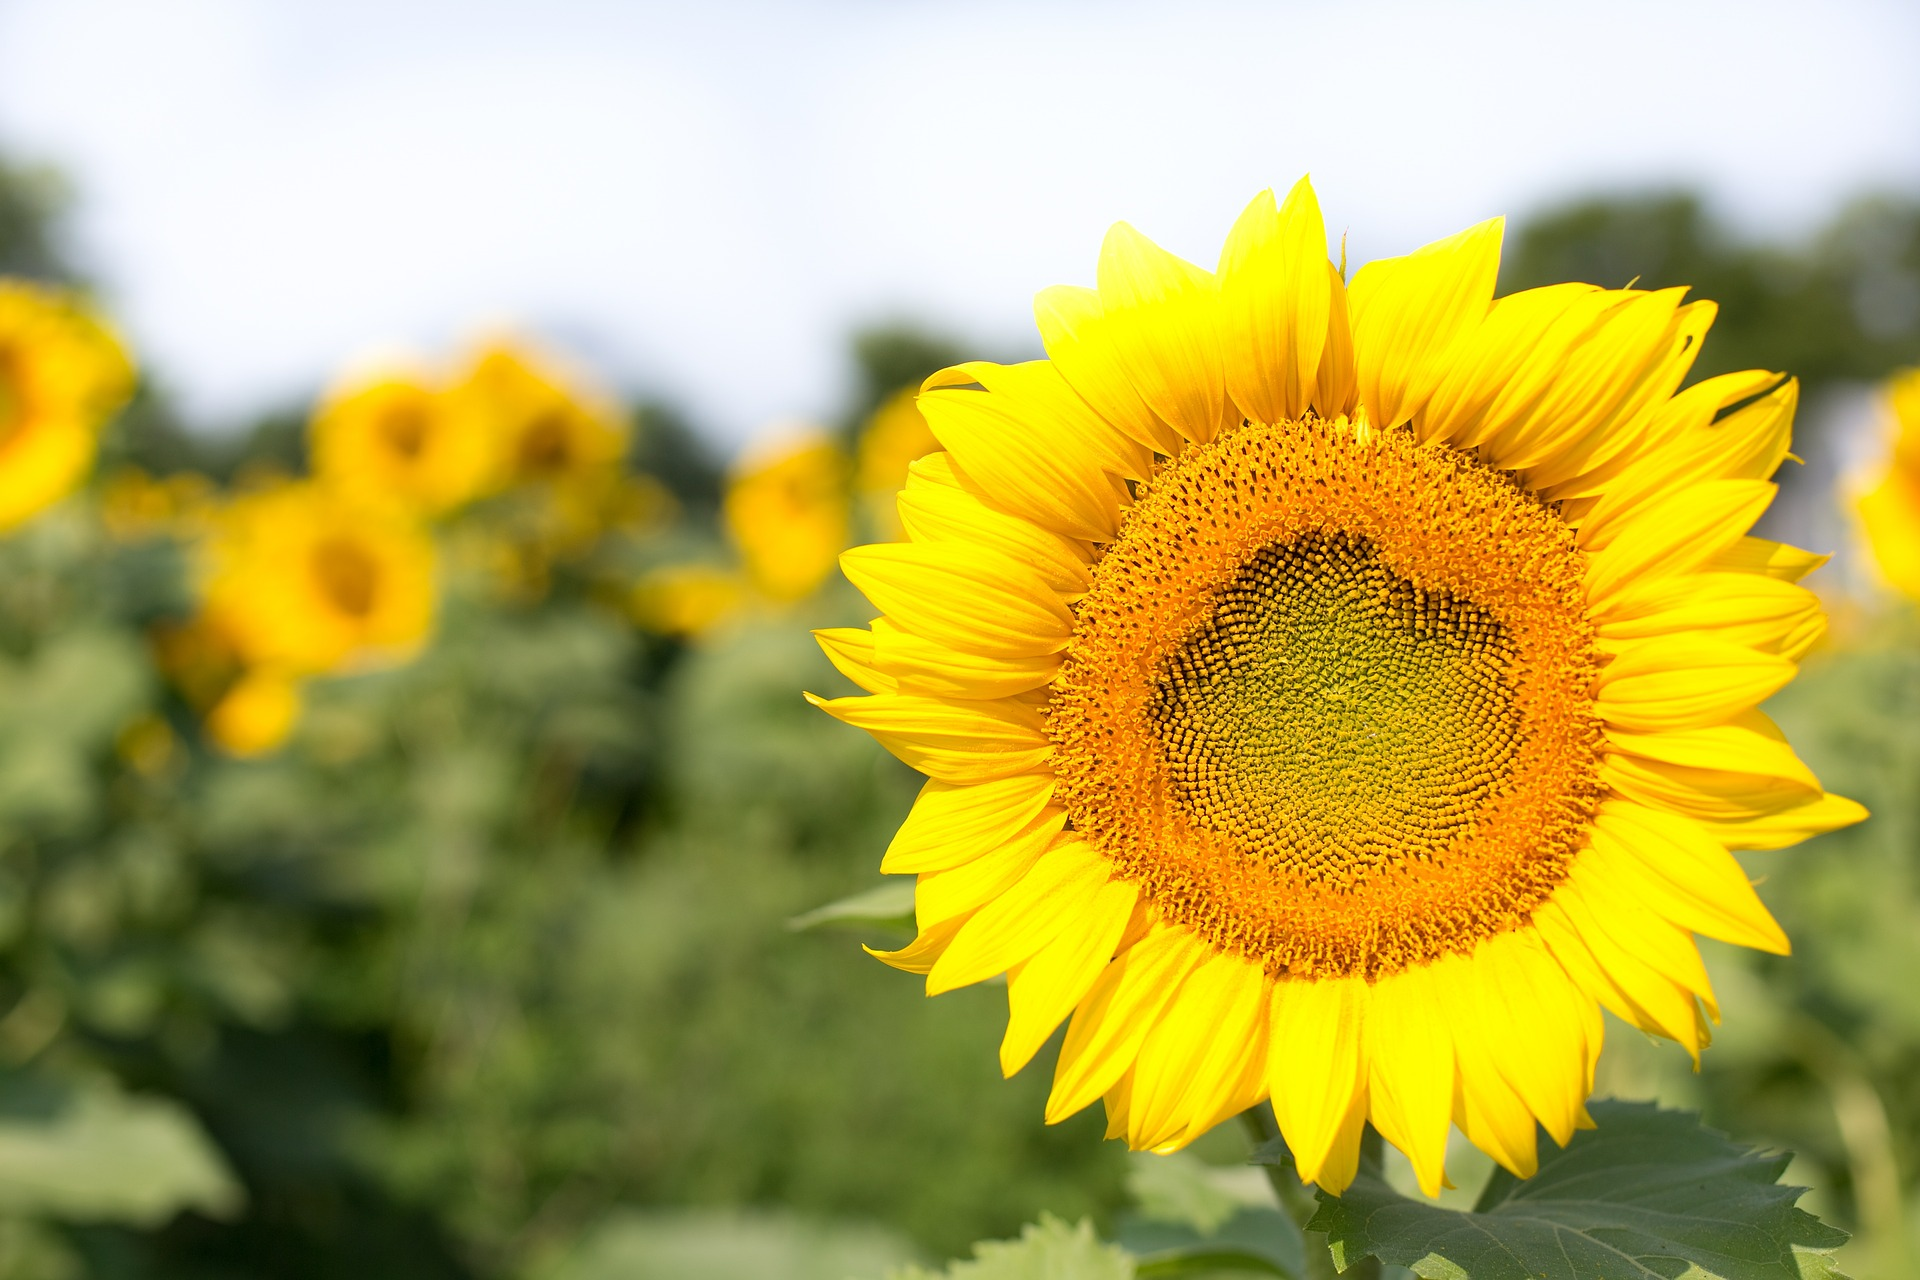 Sunflower Field, Seed, Nature, Sun, Sunflower, HQ Photo